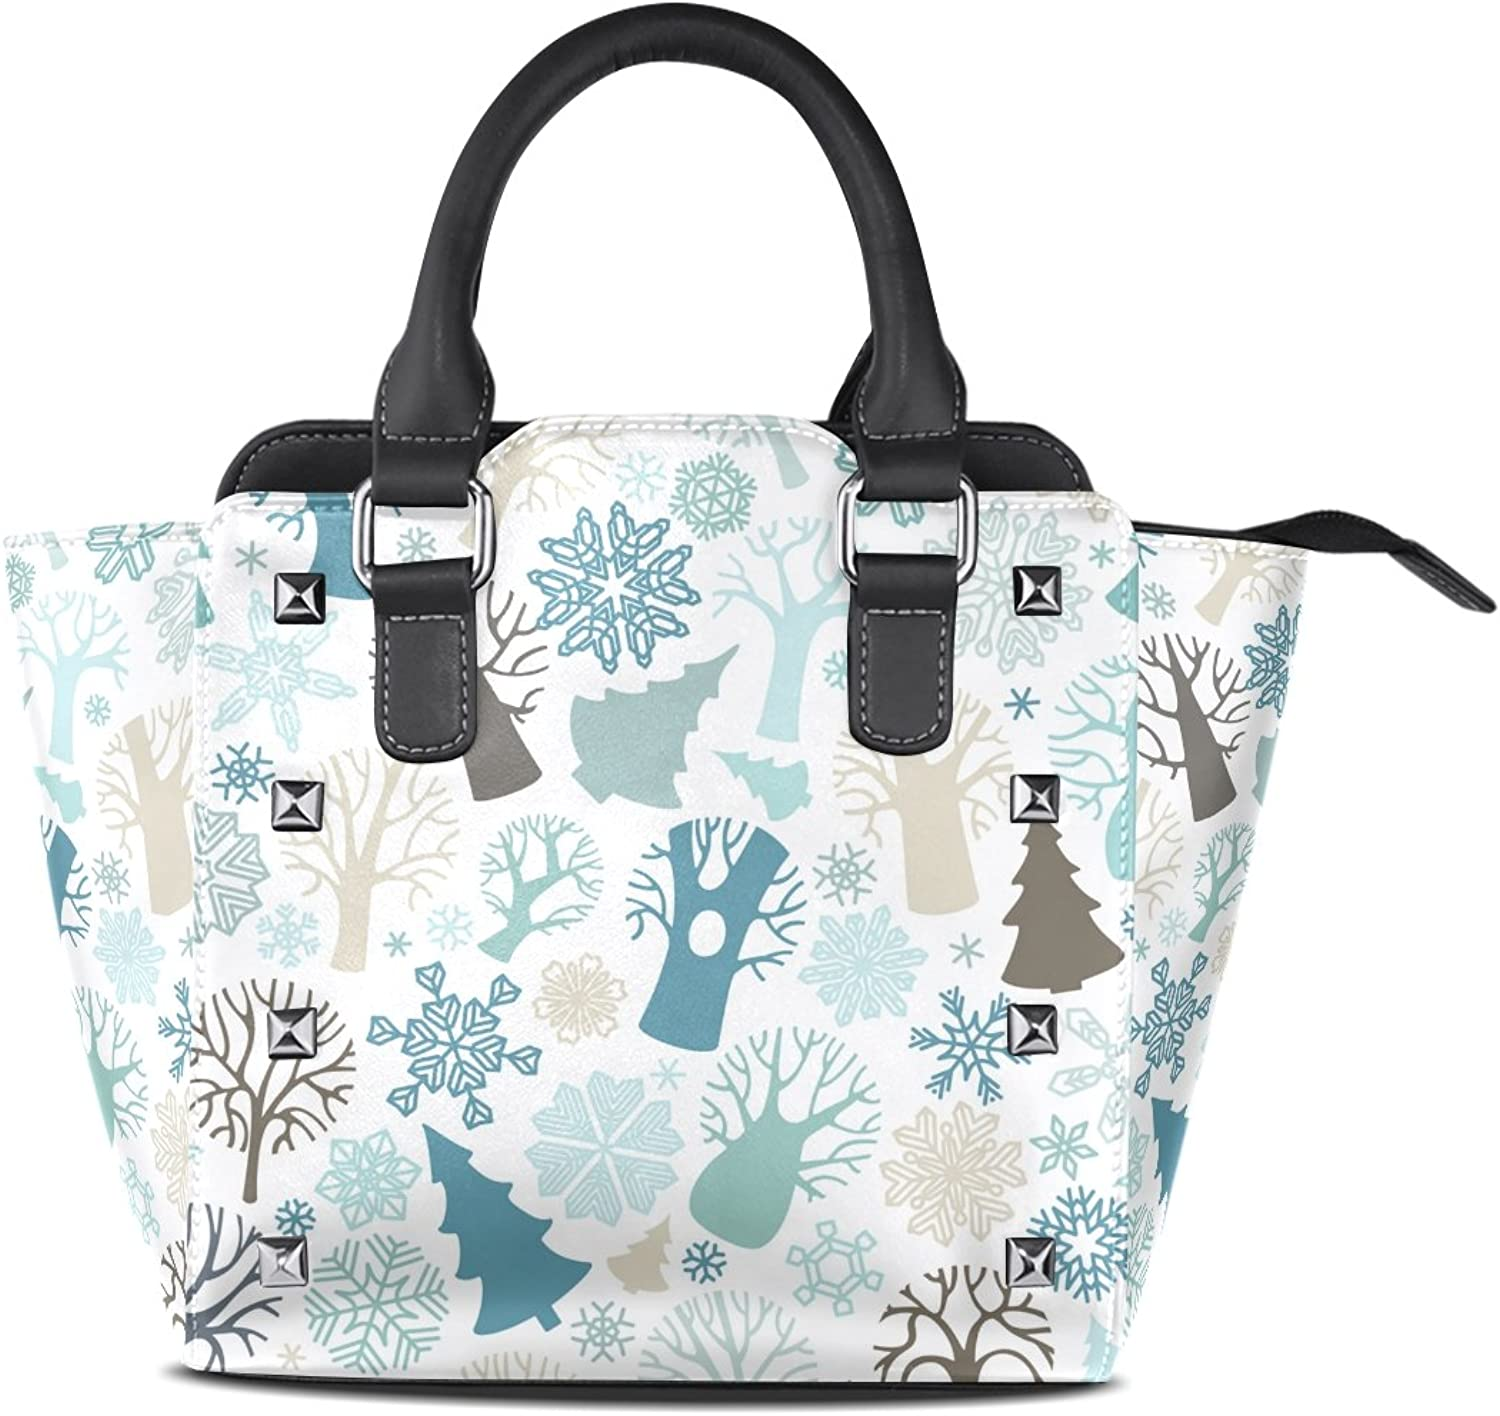 My Little Nest Women's Top Handle Satchel Handbag Winter Forest Trees Firs Snowflakes Ladies PU Leather Shoulder Bag Crossbody Bag